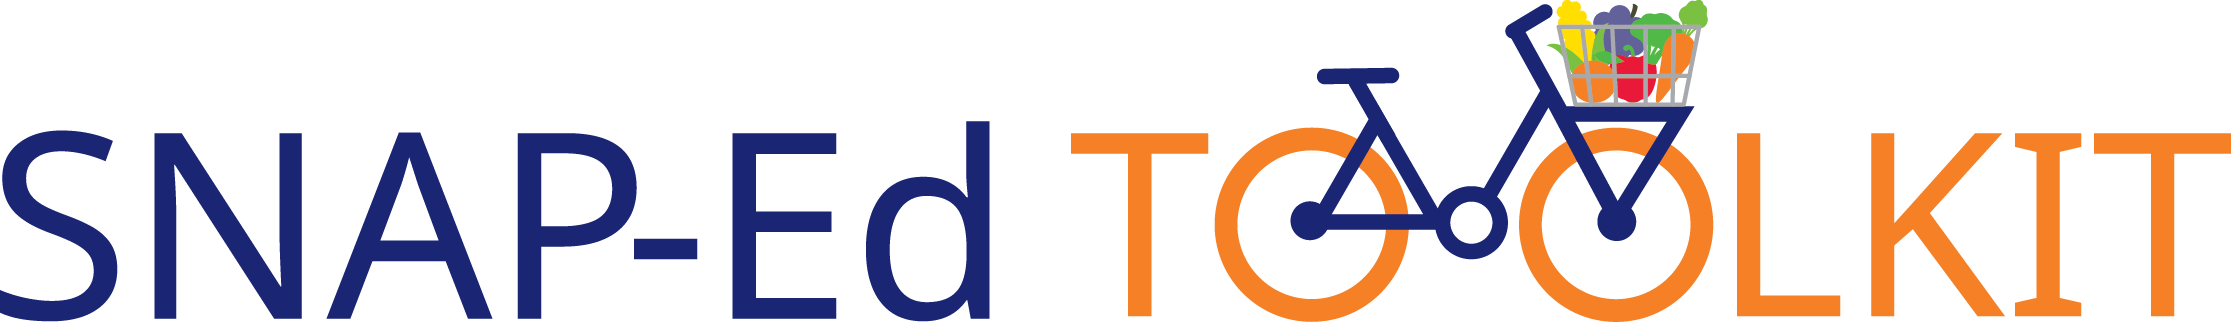 SNAPEd Toolkit logo